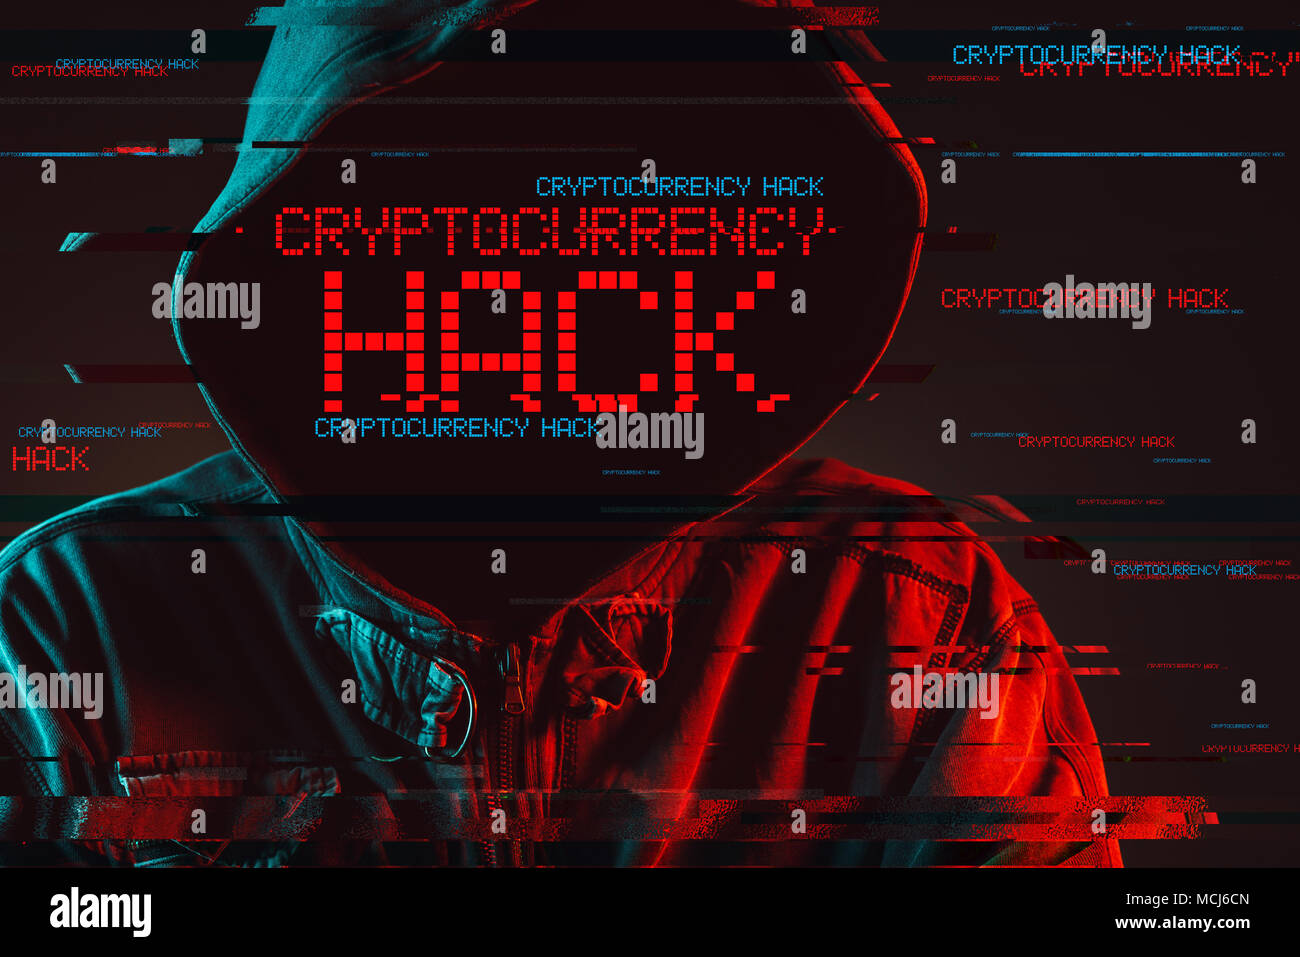 Cryptocurrency hack concept with faceless hooded male person, low